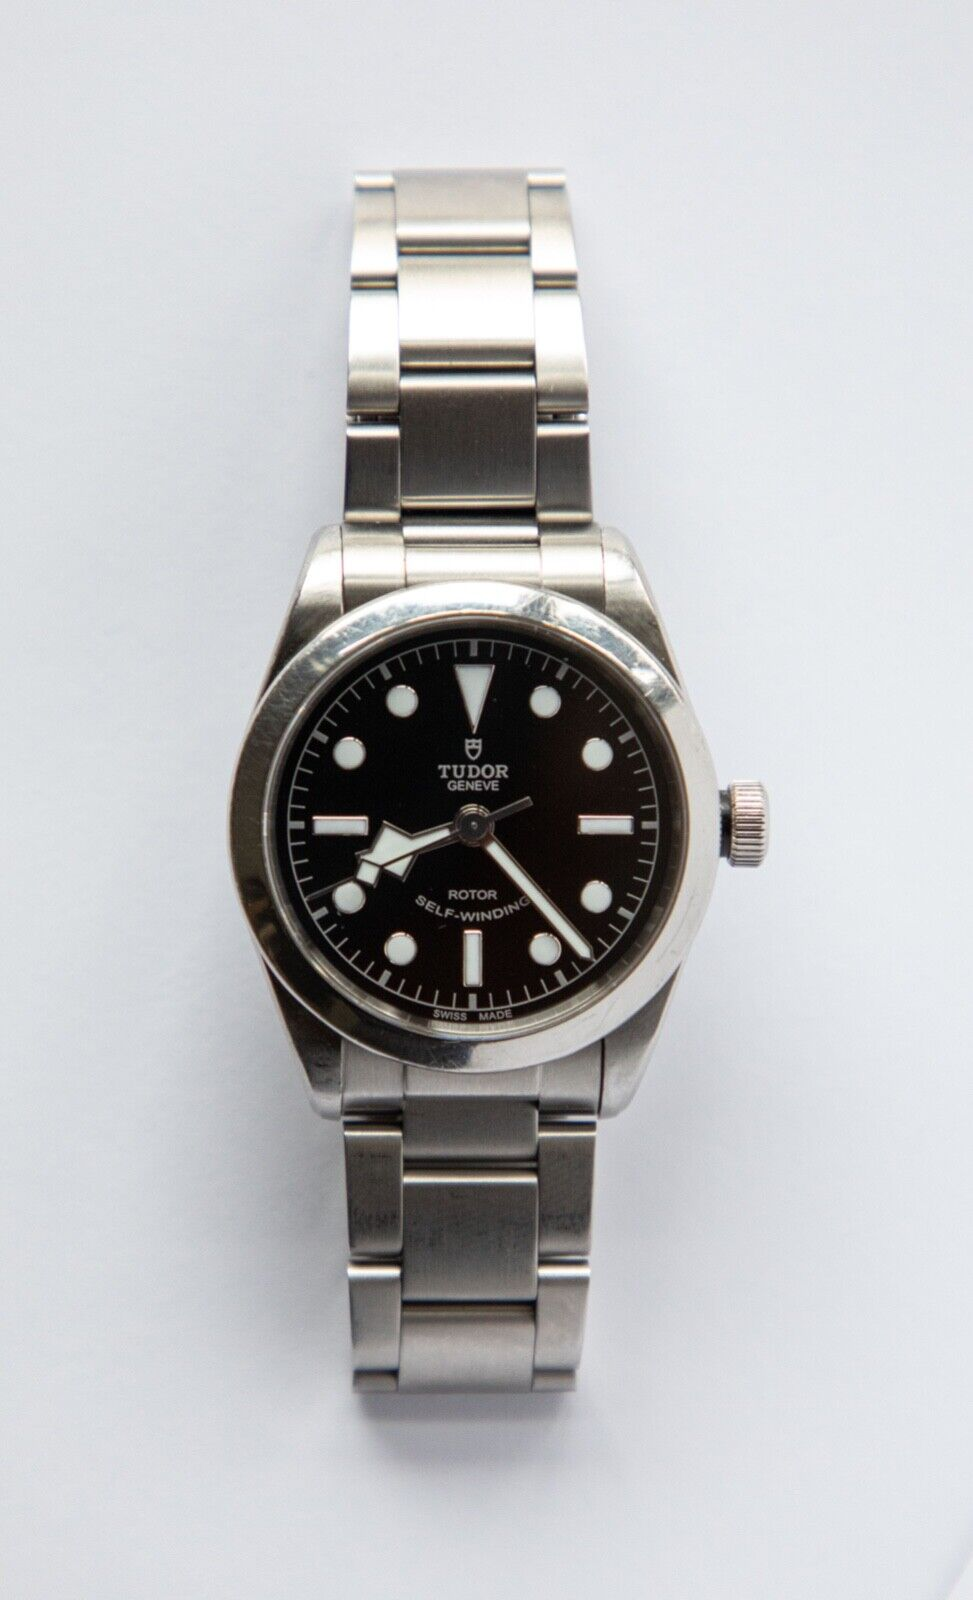 TUDOR Black Bay 36mm M79500-0001 stainless steel, 4 other bands, box, papers - watch picture 1